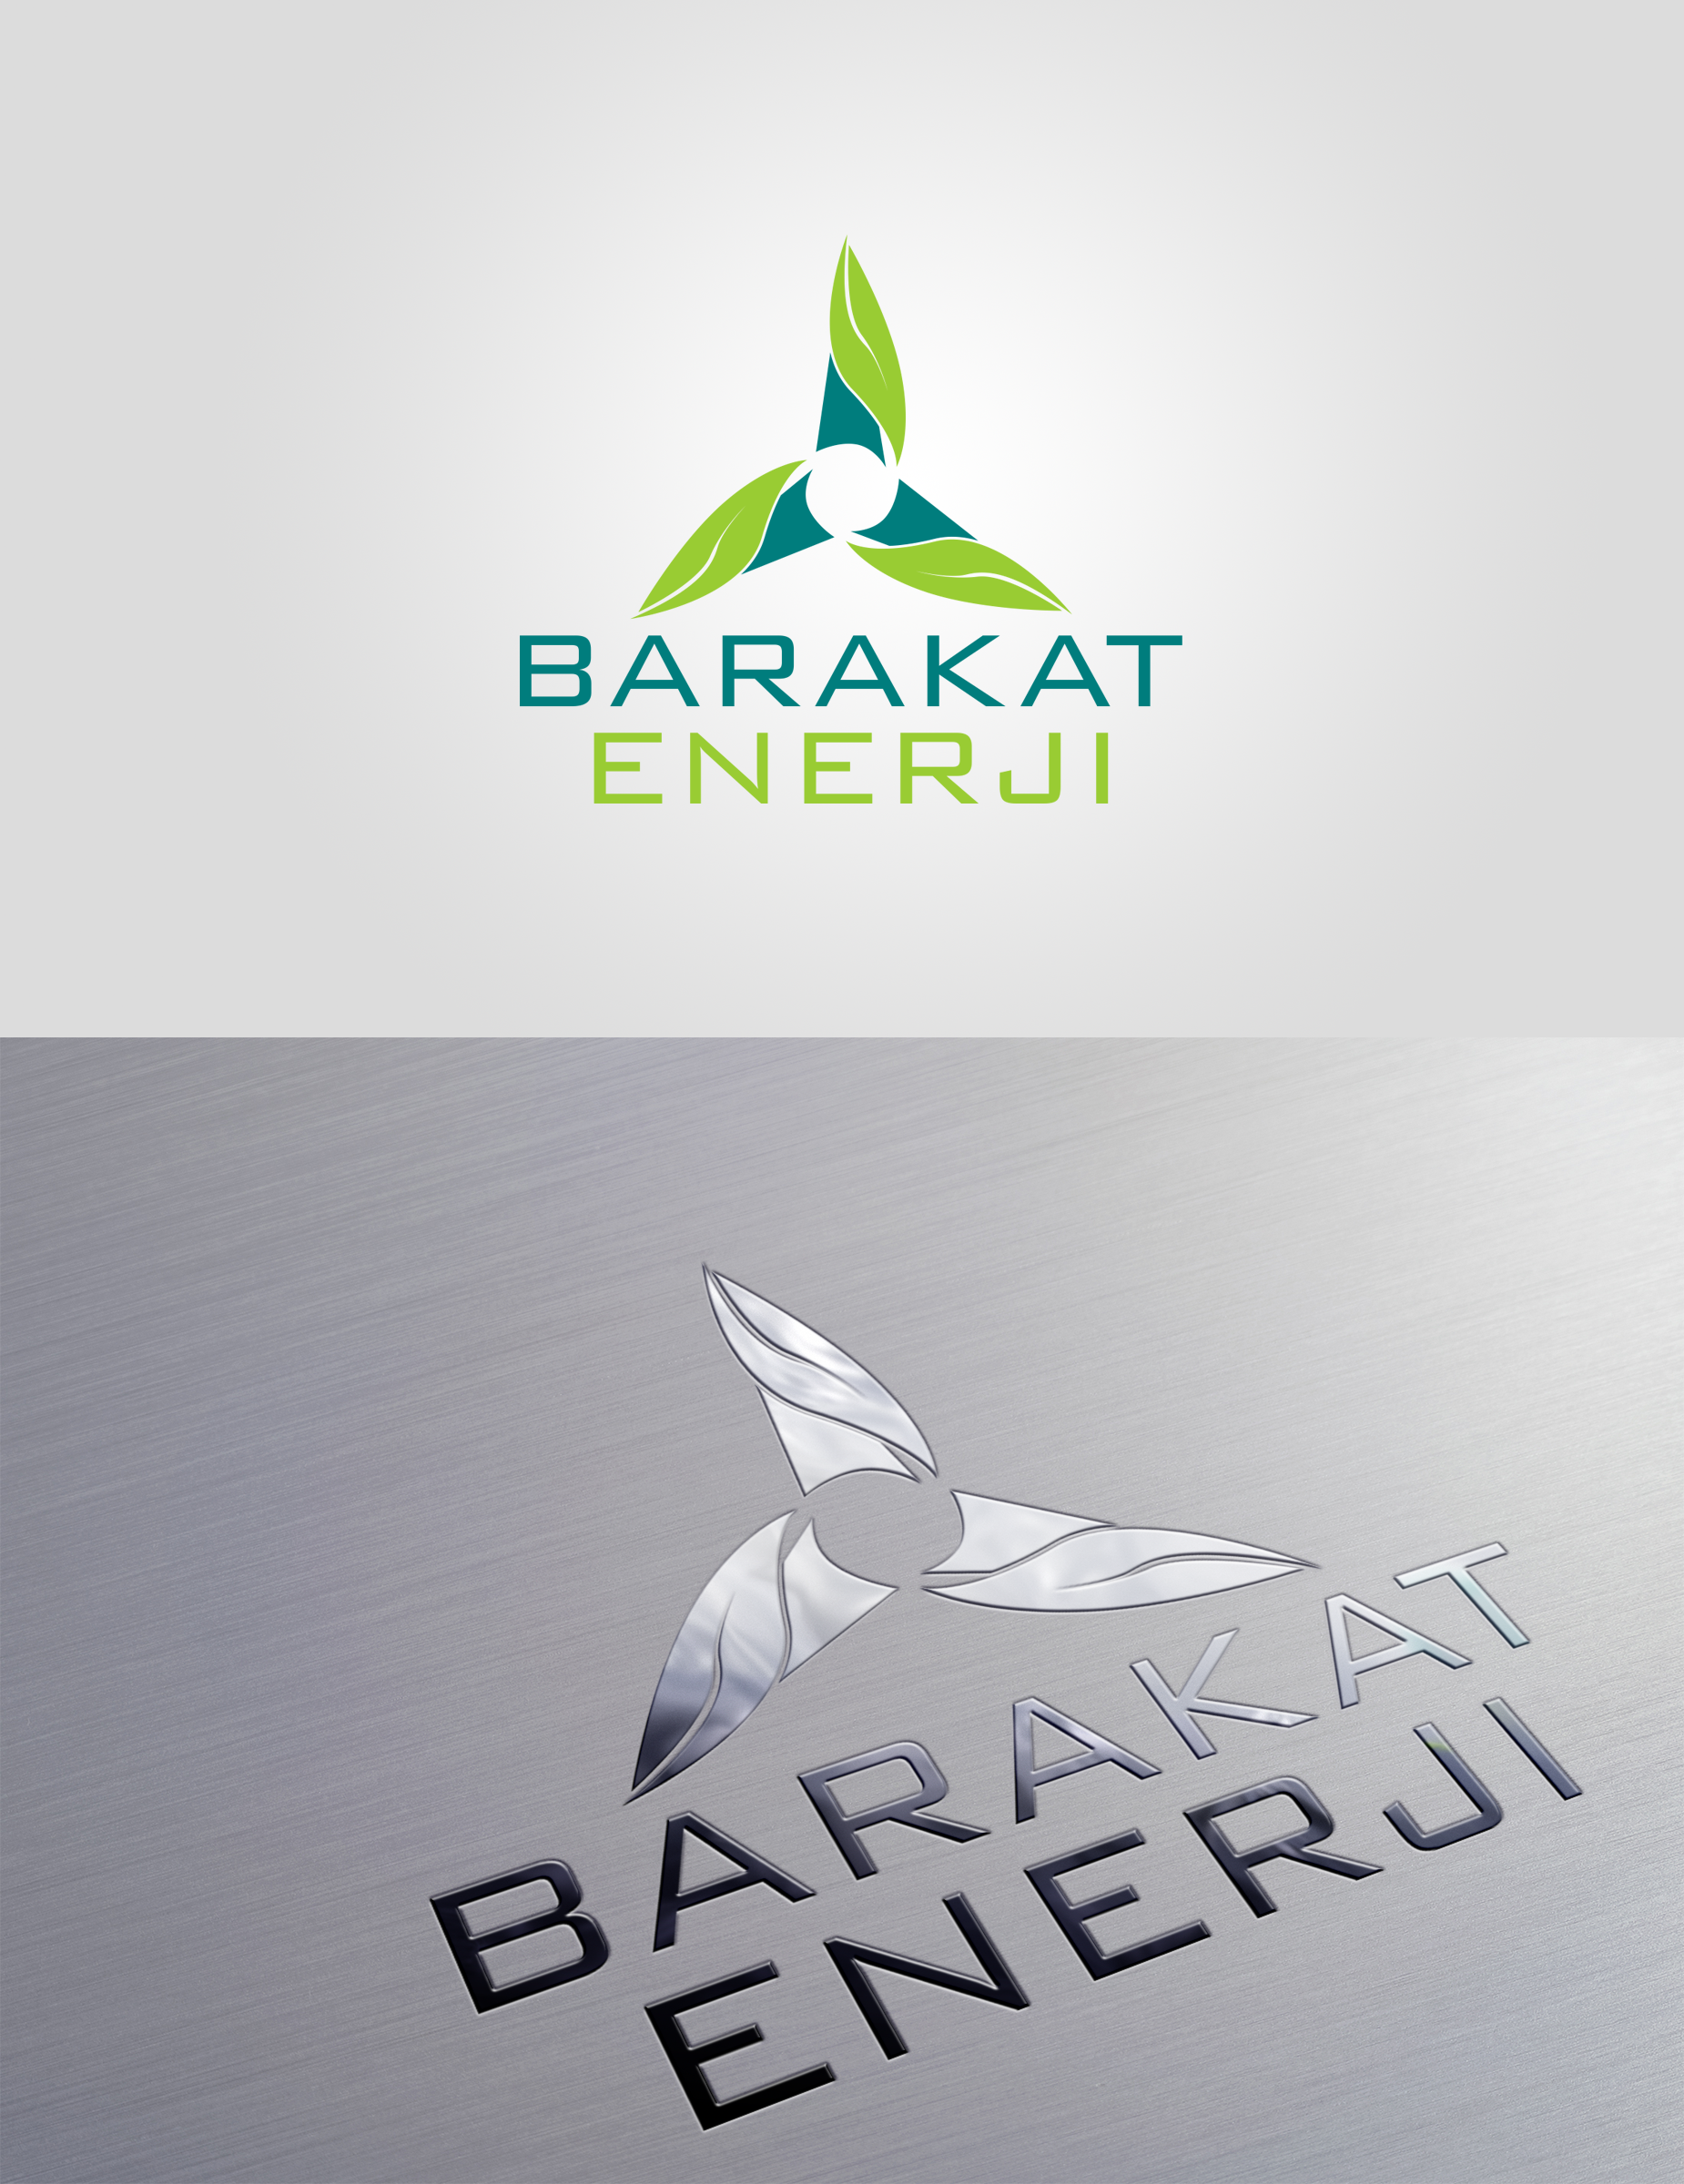 Energy Company Logo Design Order your Design today from